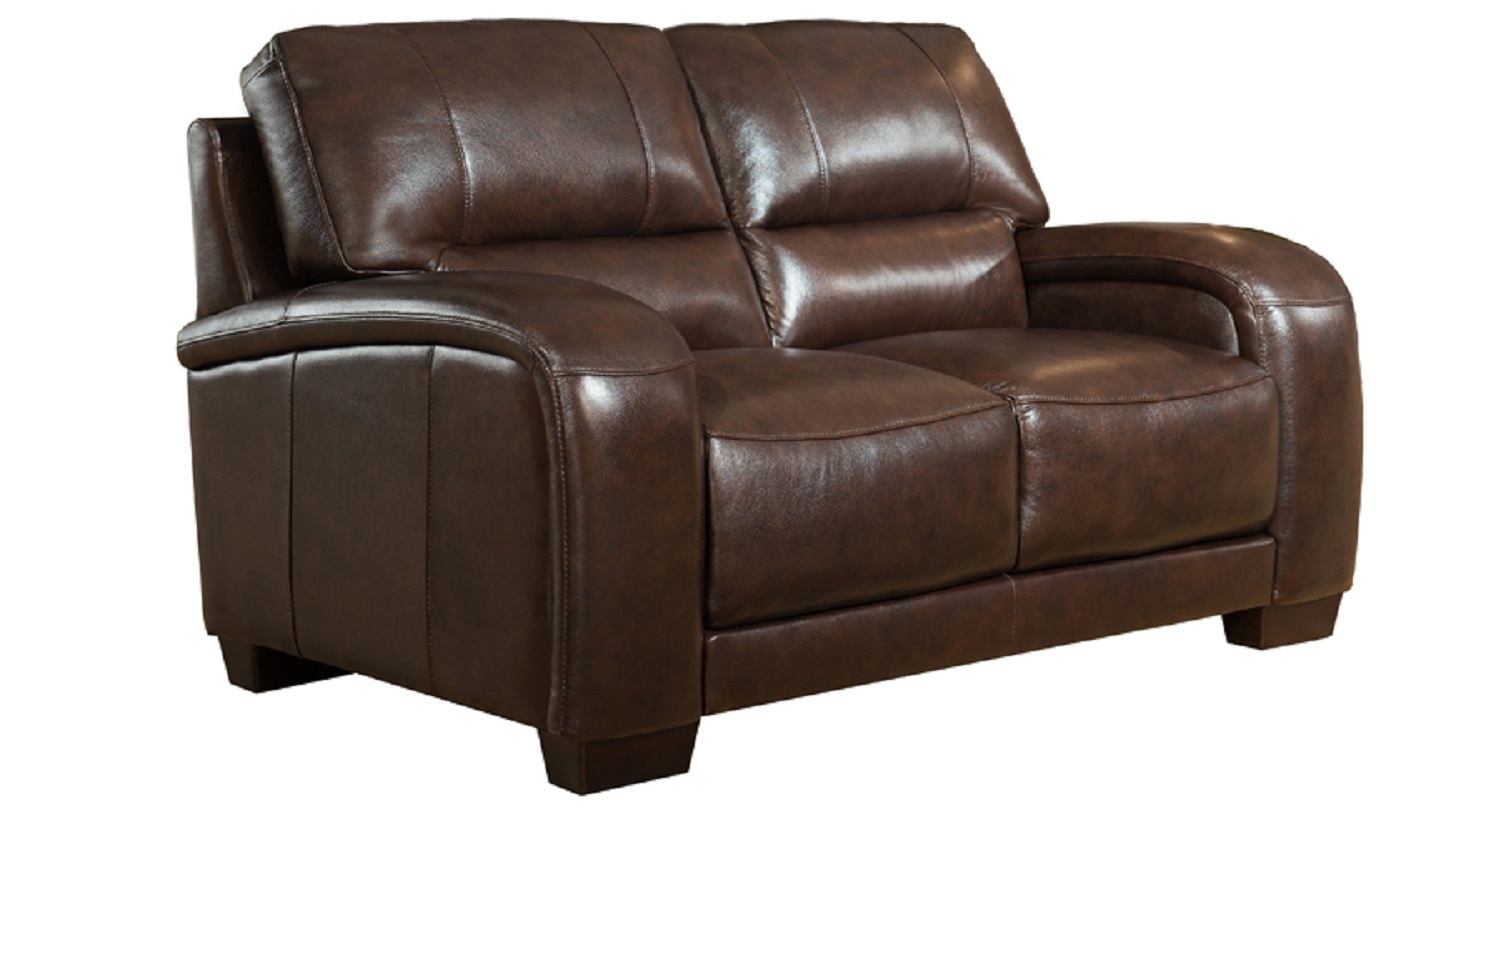 Jane Furniture Brigitte Top Grain Dark Brown Leather Loveseat Usa Furniture Online